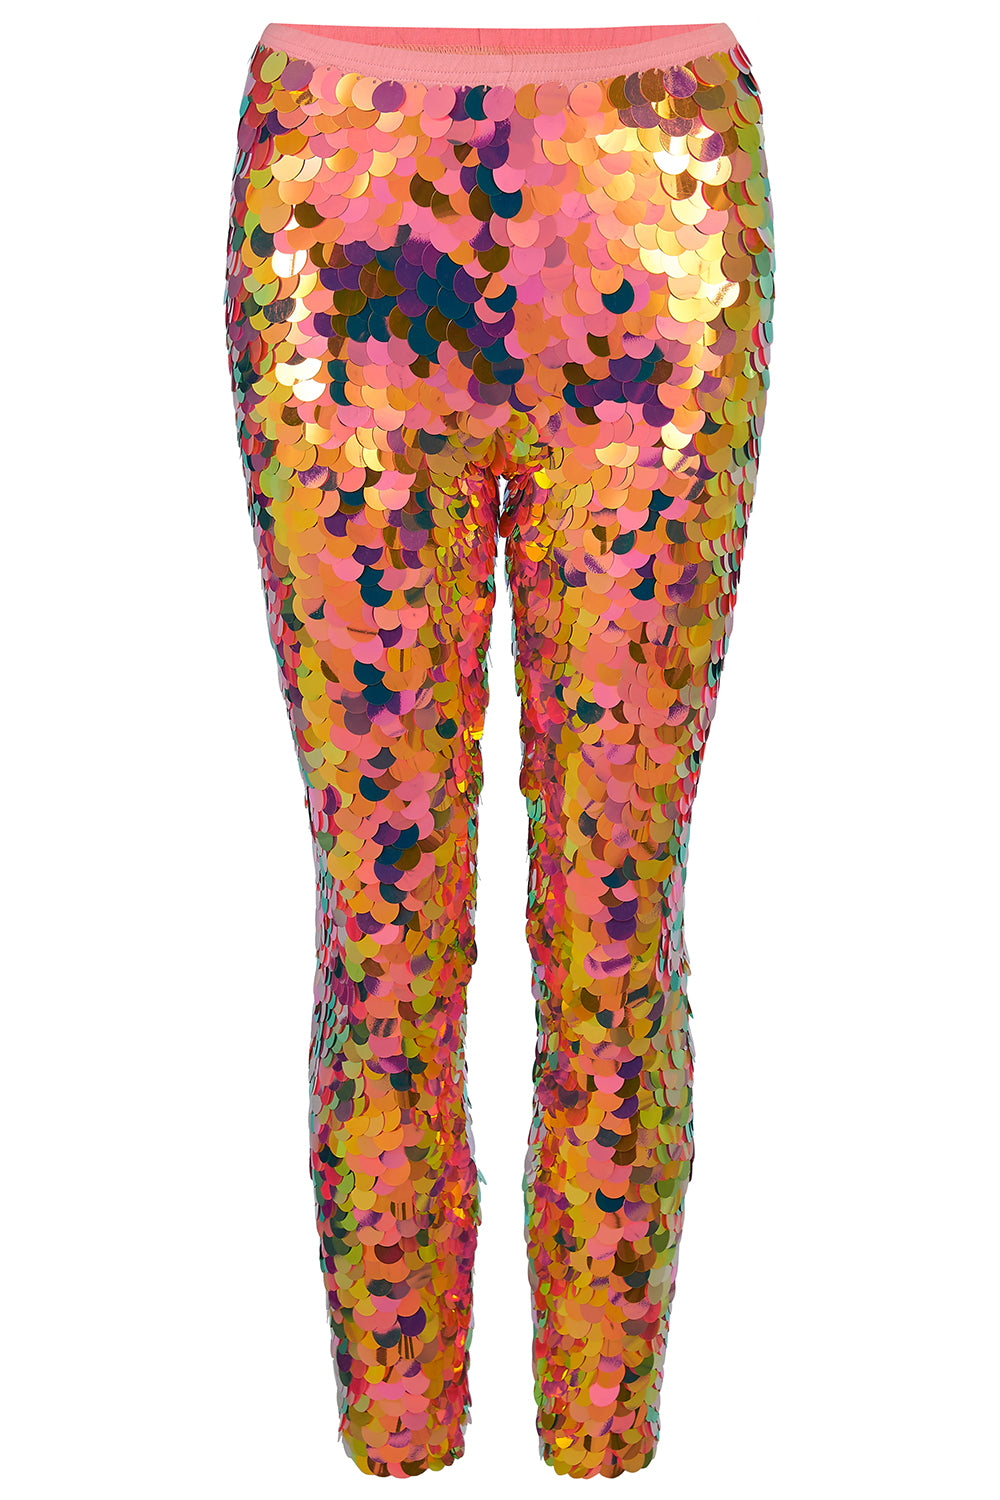 INDUS SEQUIN LEGGINGS - SOLAR